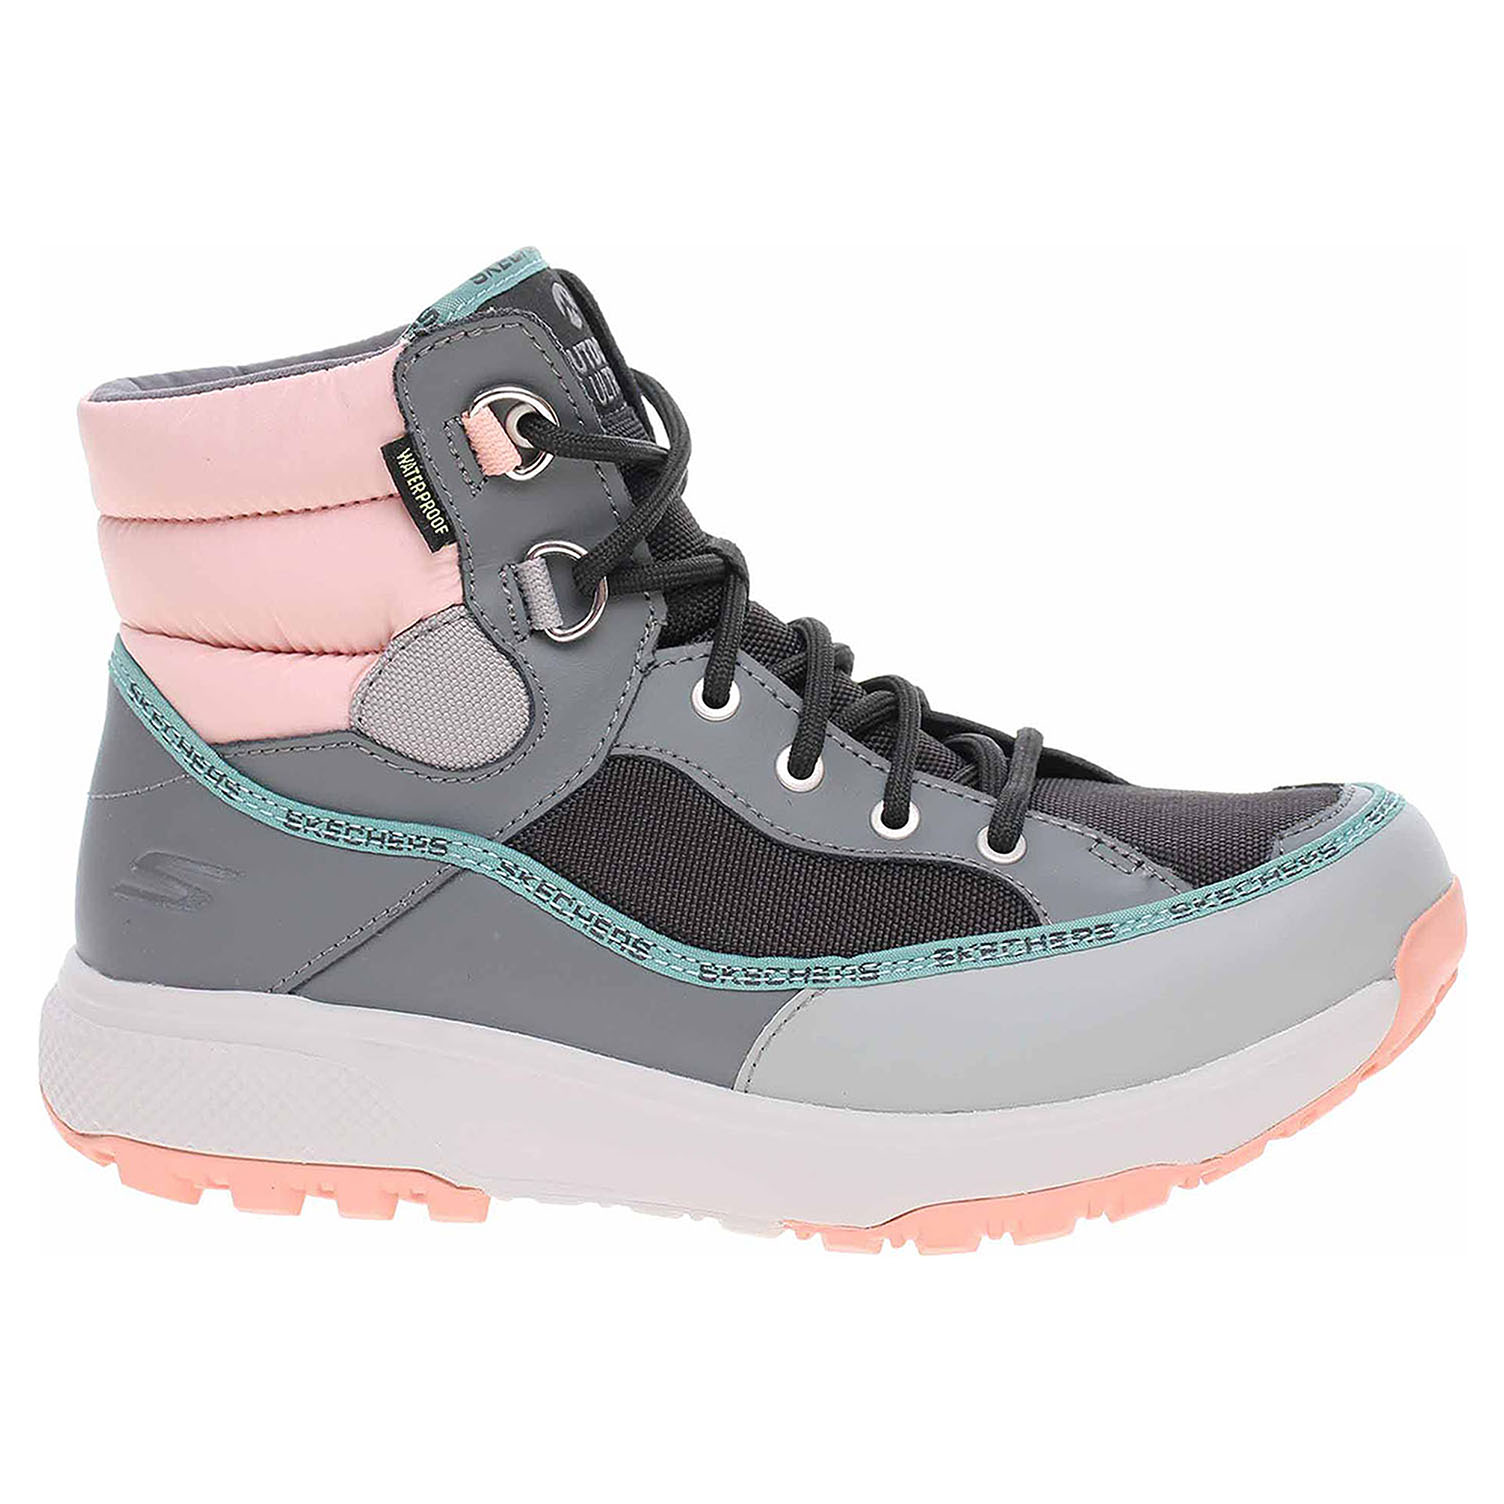 Skechers Outdoor Ultra - Solstice Canyon gray-mt 15562 GYMT 37,5